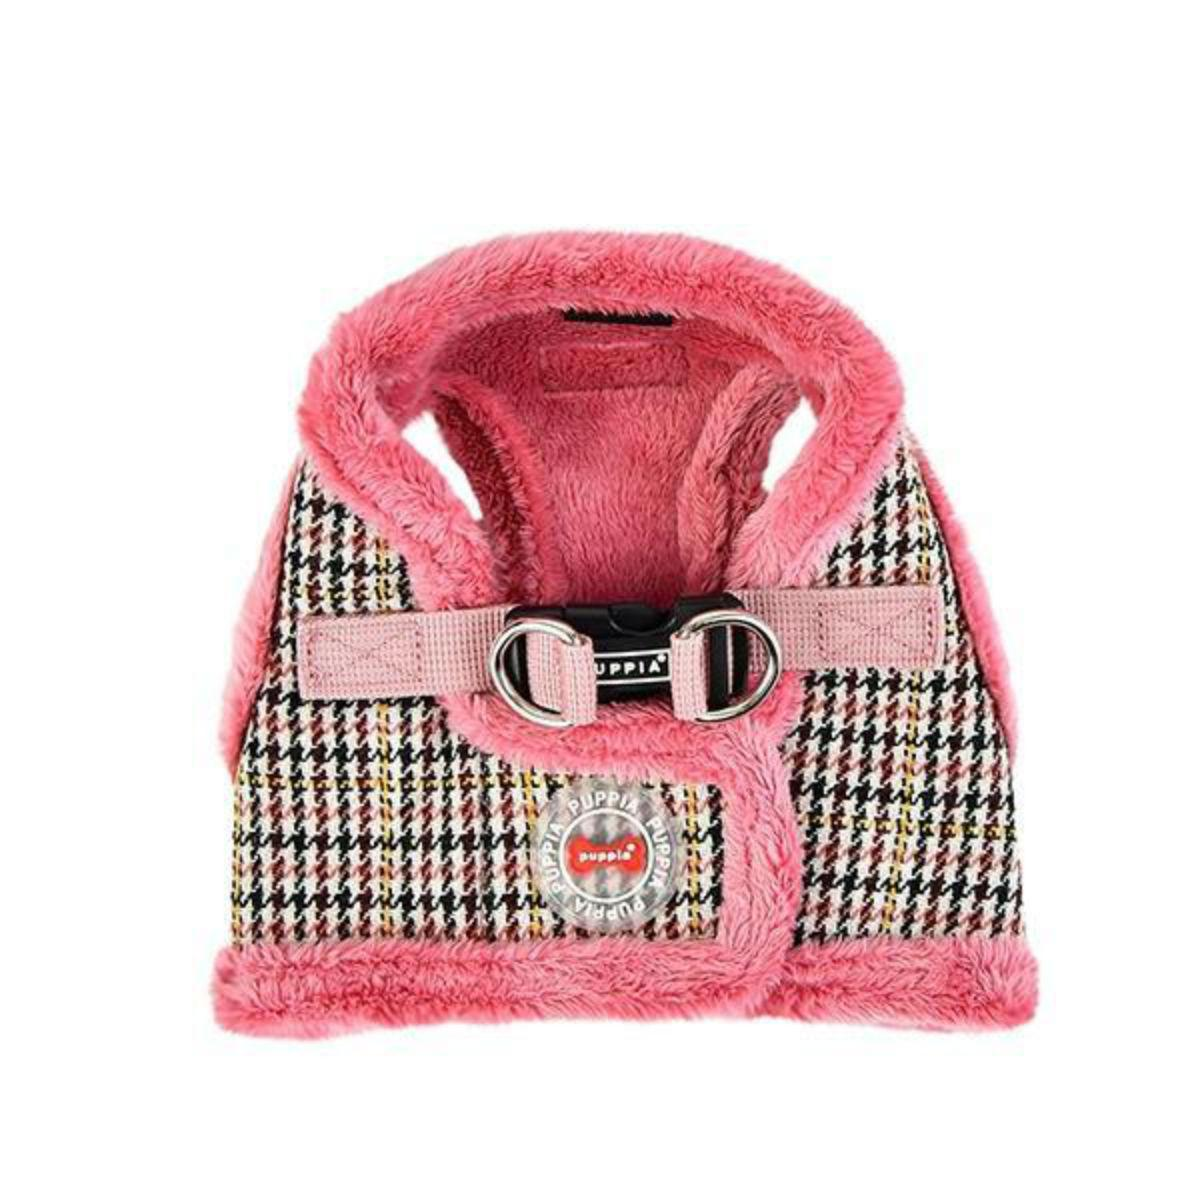 Auden Vest Style Dog Harness by Puppia - Indian Pink